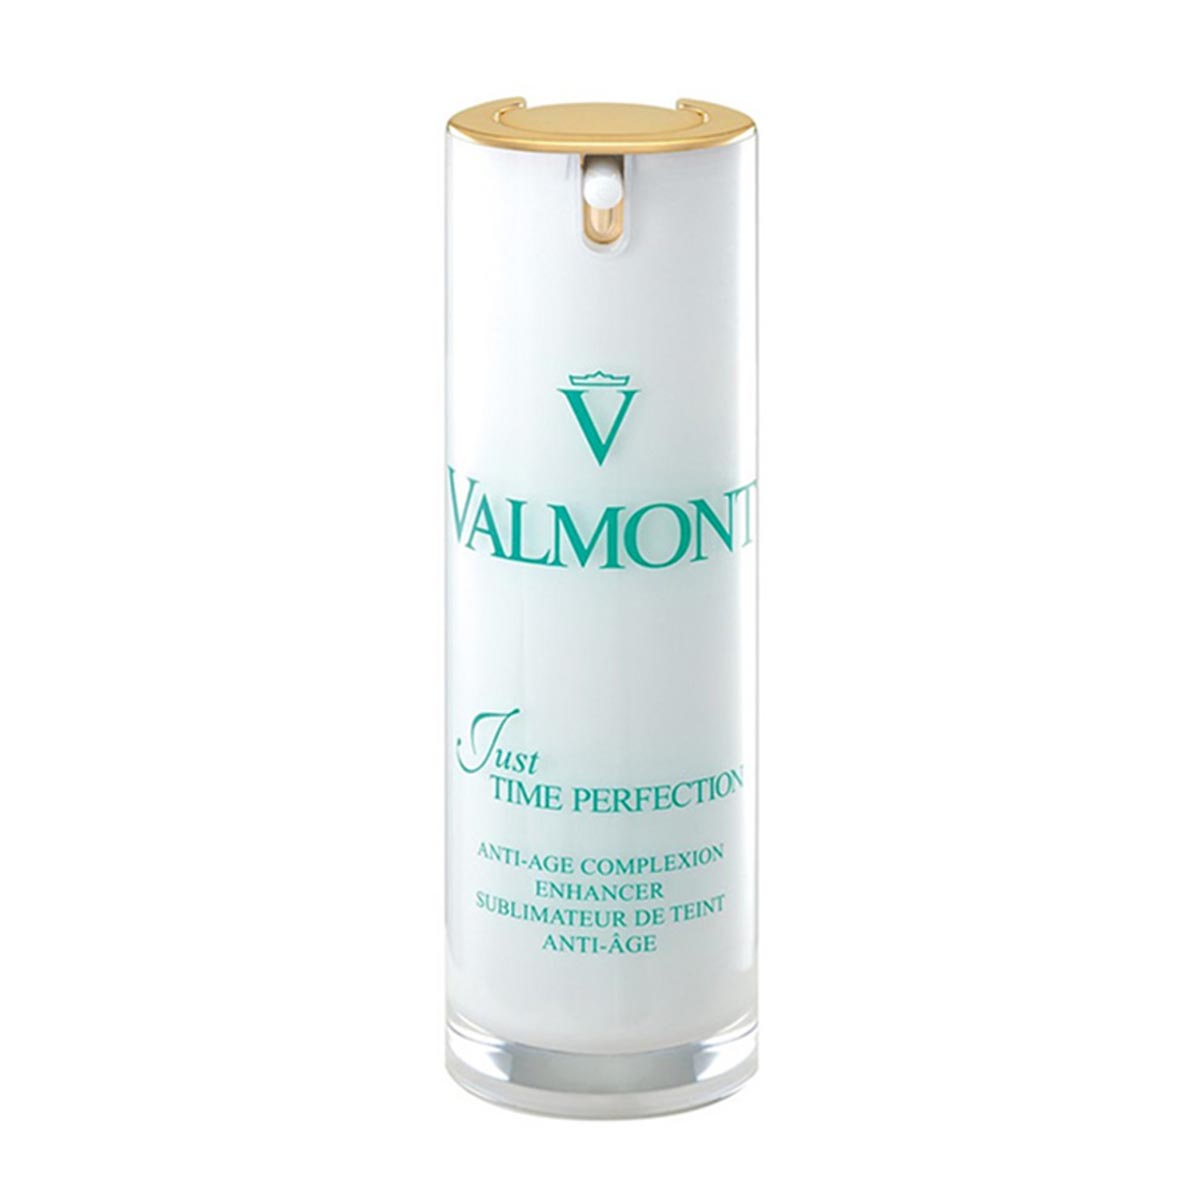 Valmont perfection just time anti age complexion spf30 golden beige 30ml